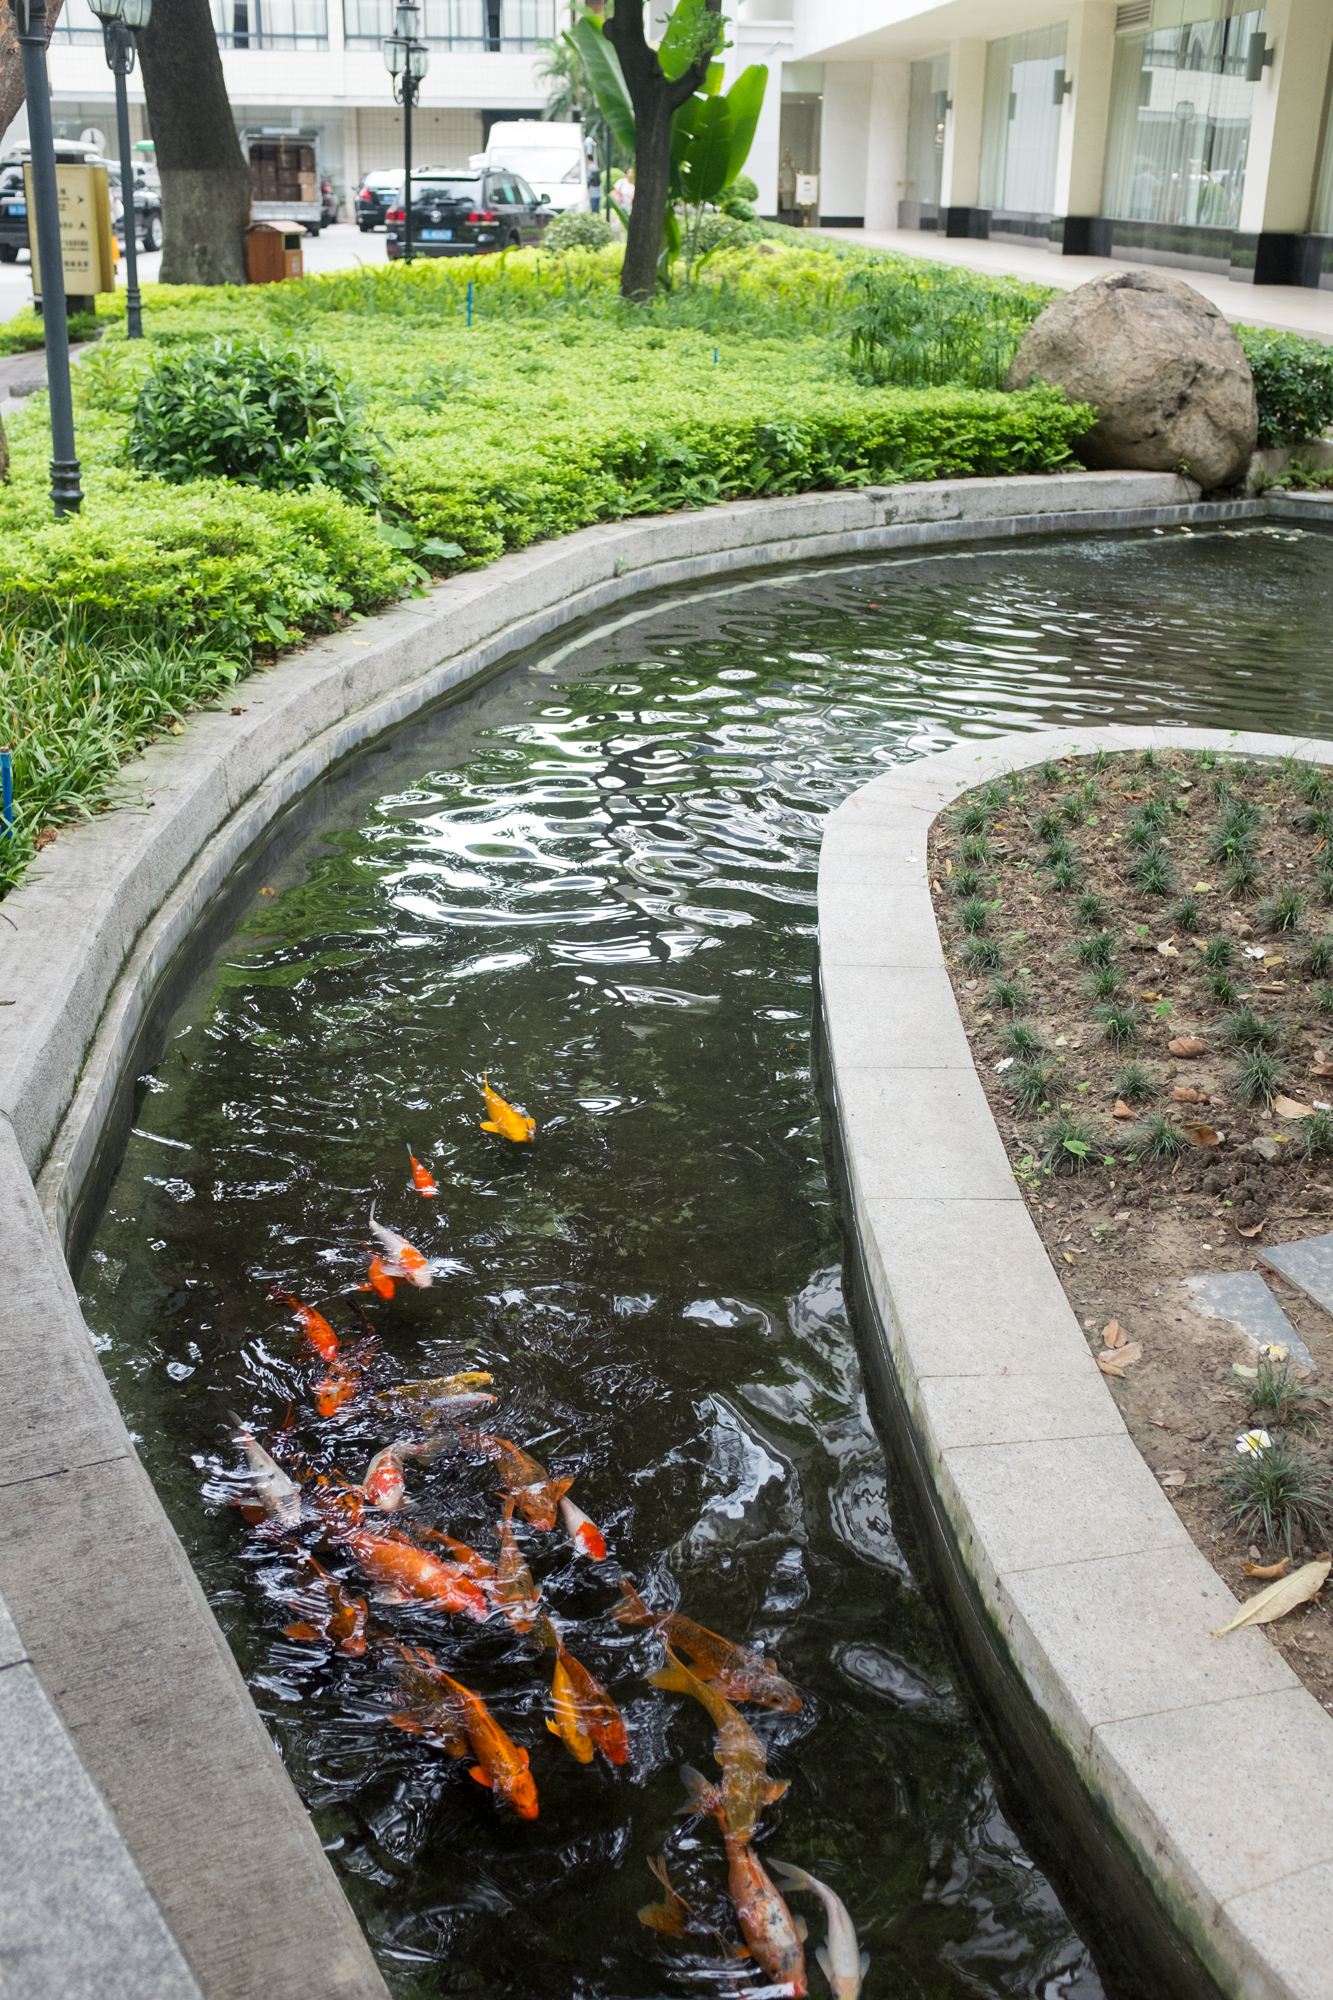 Carp in ceremonial canal